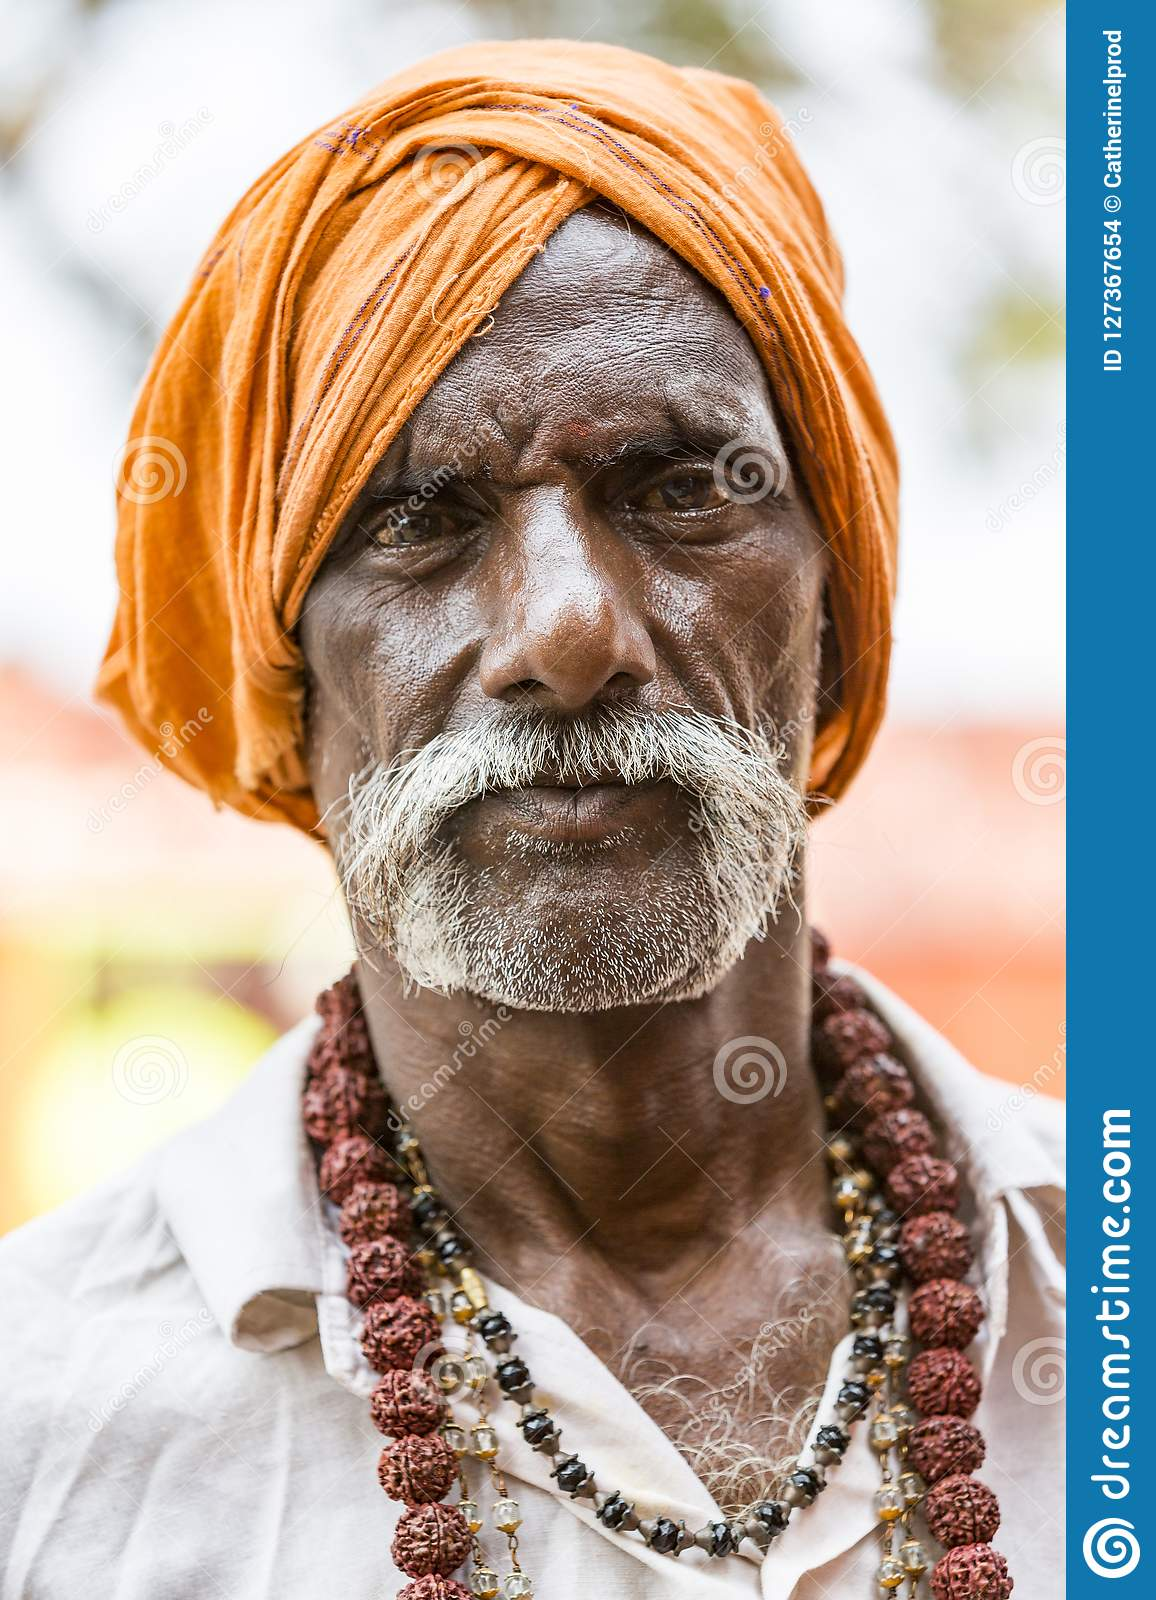 Portrait of unidentified Sadhus pilgrims man dressed in orange clothes, sitting on the road, waiting for food. It is a mass Hindu